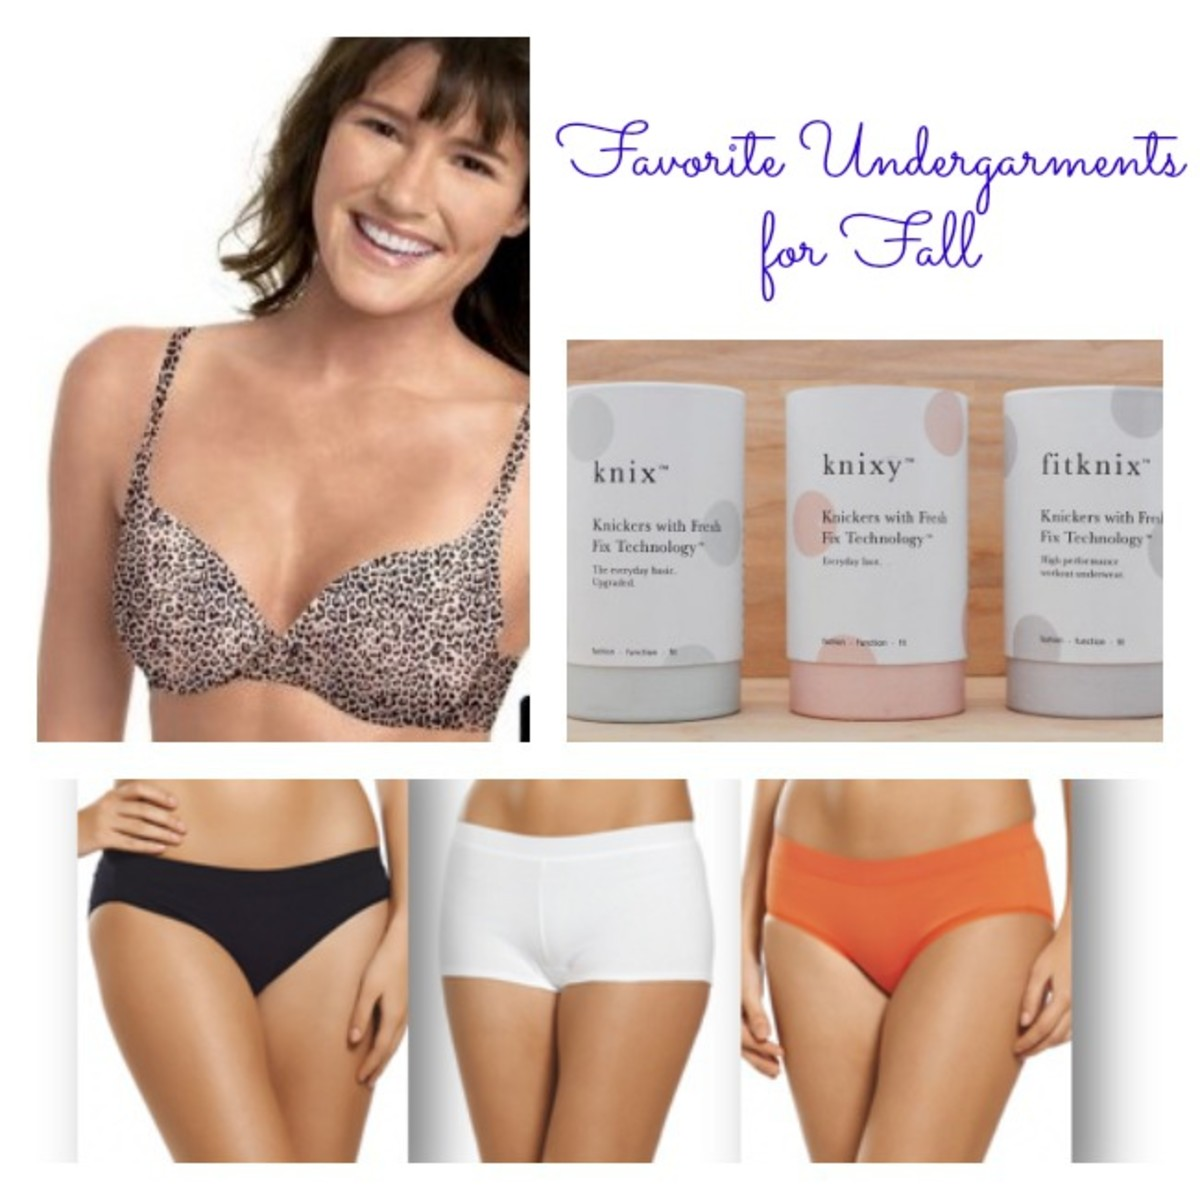 Undergarments for fall, underwear